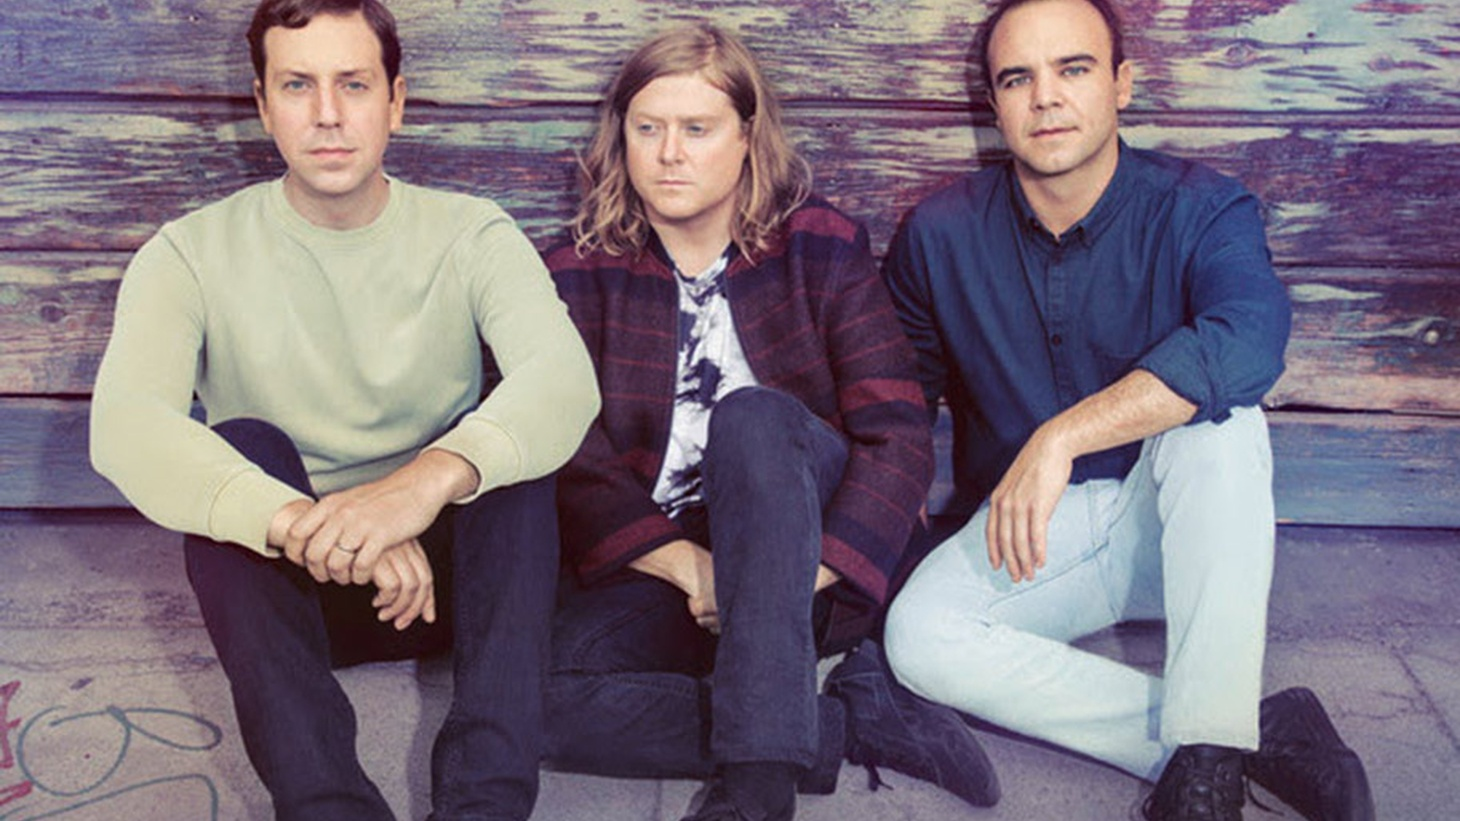 Future Islands drops its fifth studio album this Friday, plays Coachella the week after and then begin its tour in earnest.